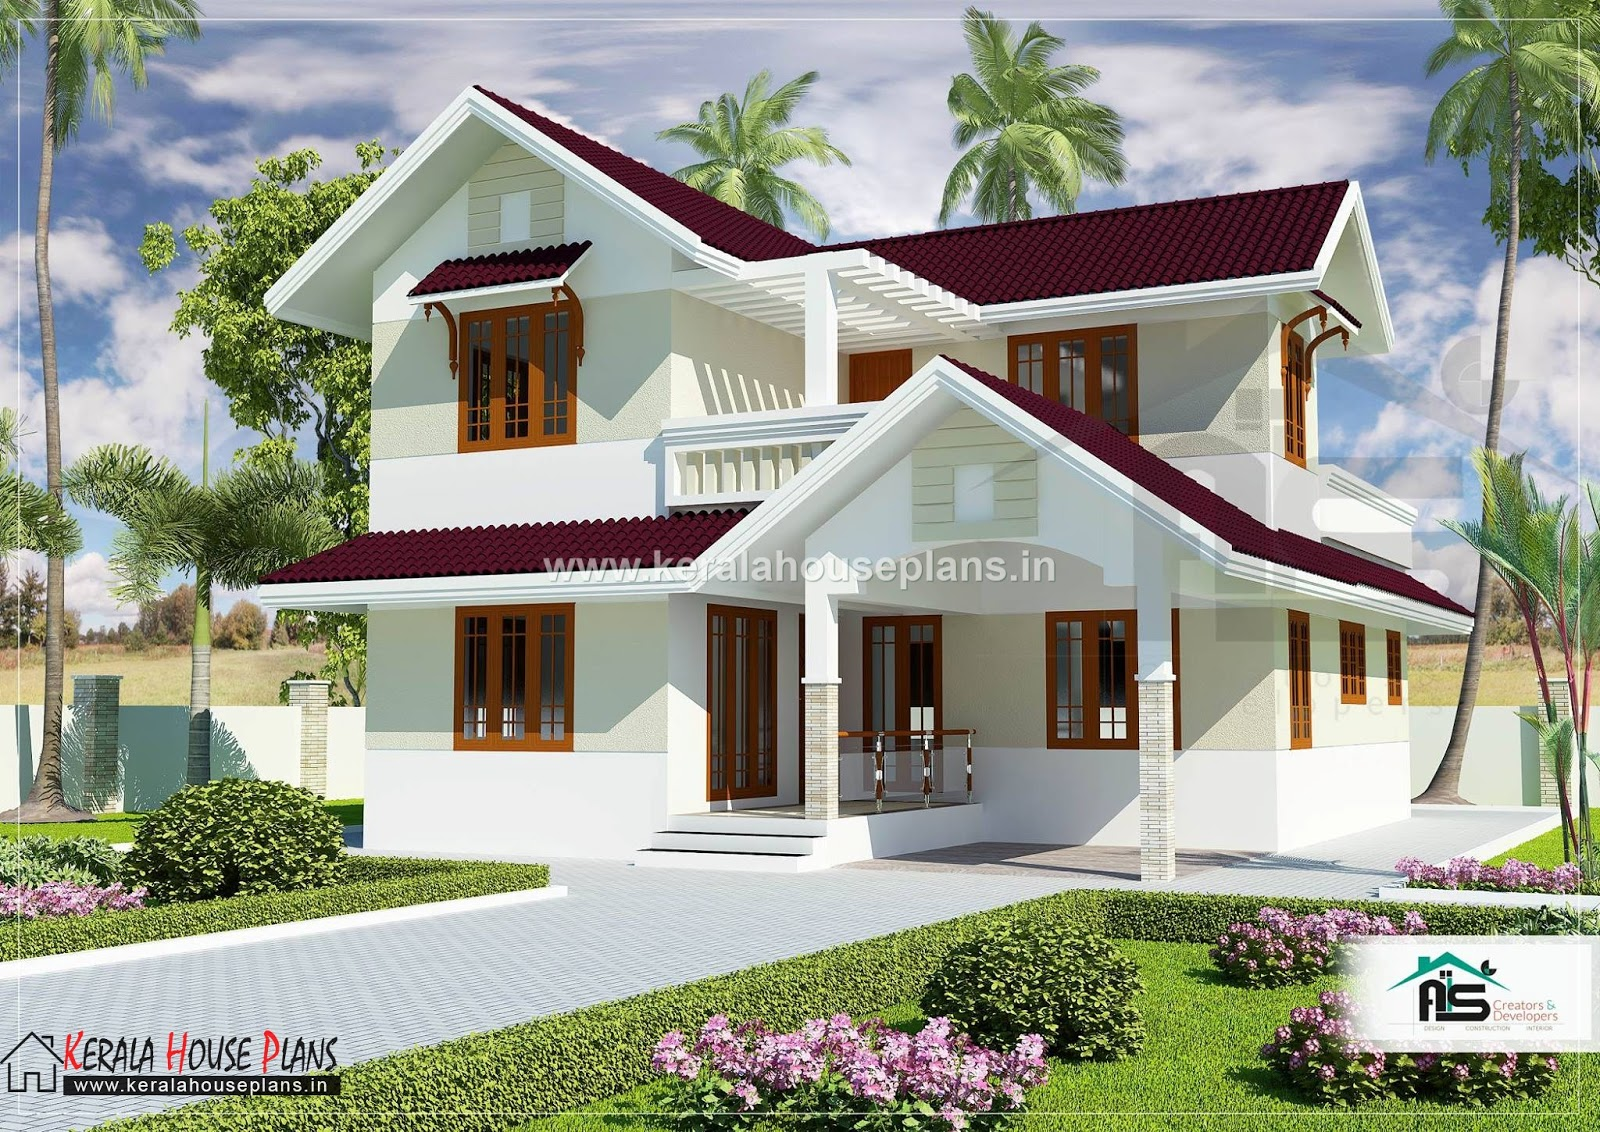 Kerala model house plans with elevation 1829 sqft kerala for Model house plan